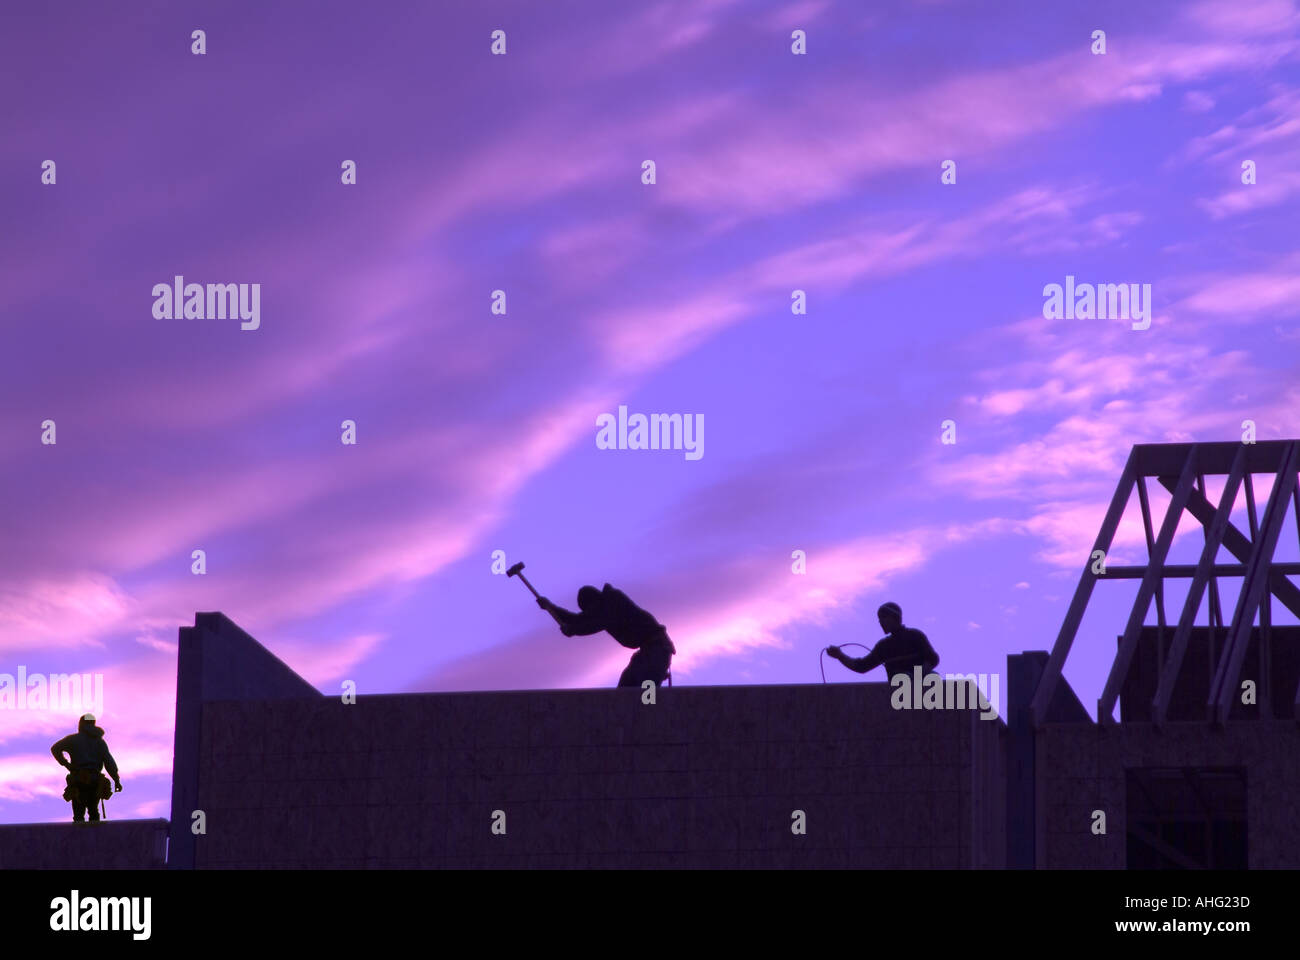 Workers Working On Roof Framing Stockfotos & Workers Working On Roof ...